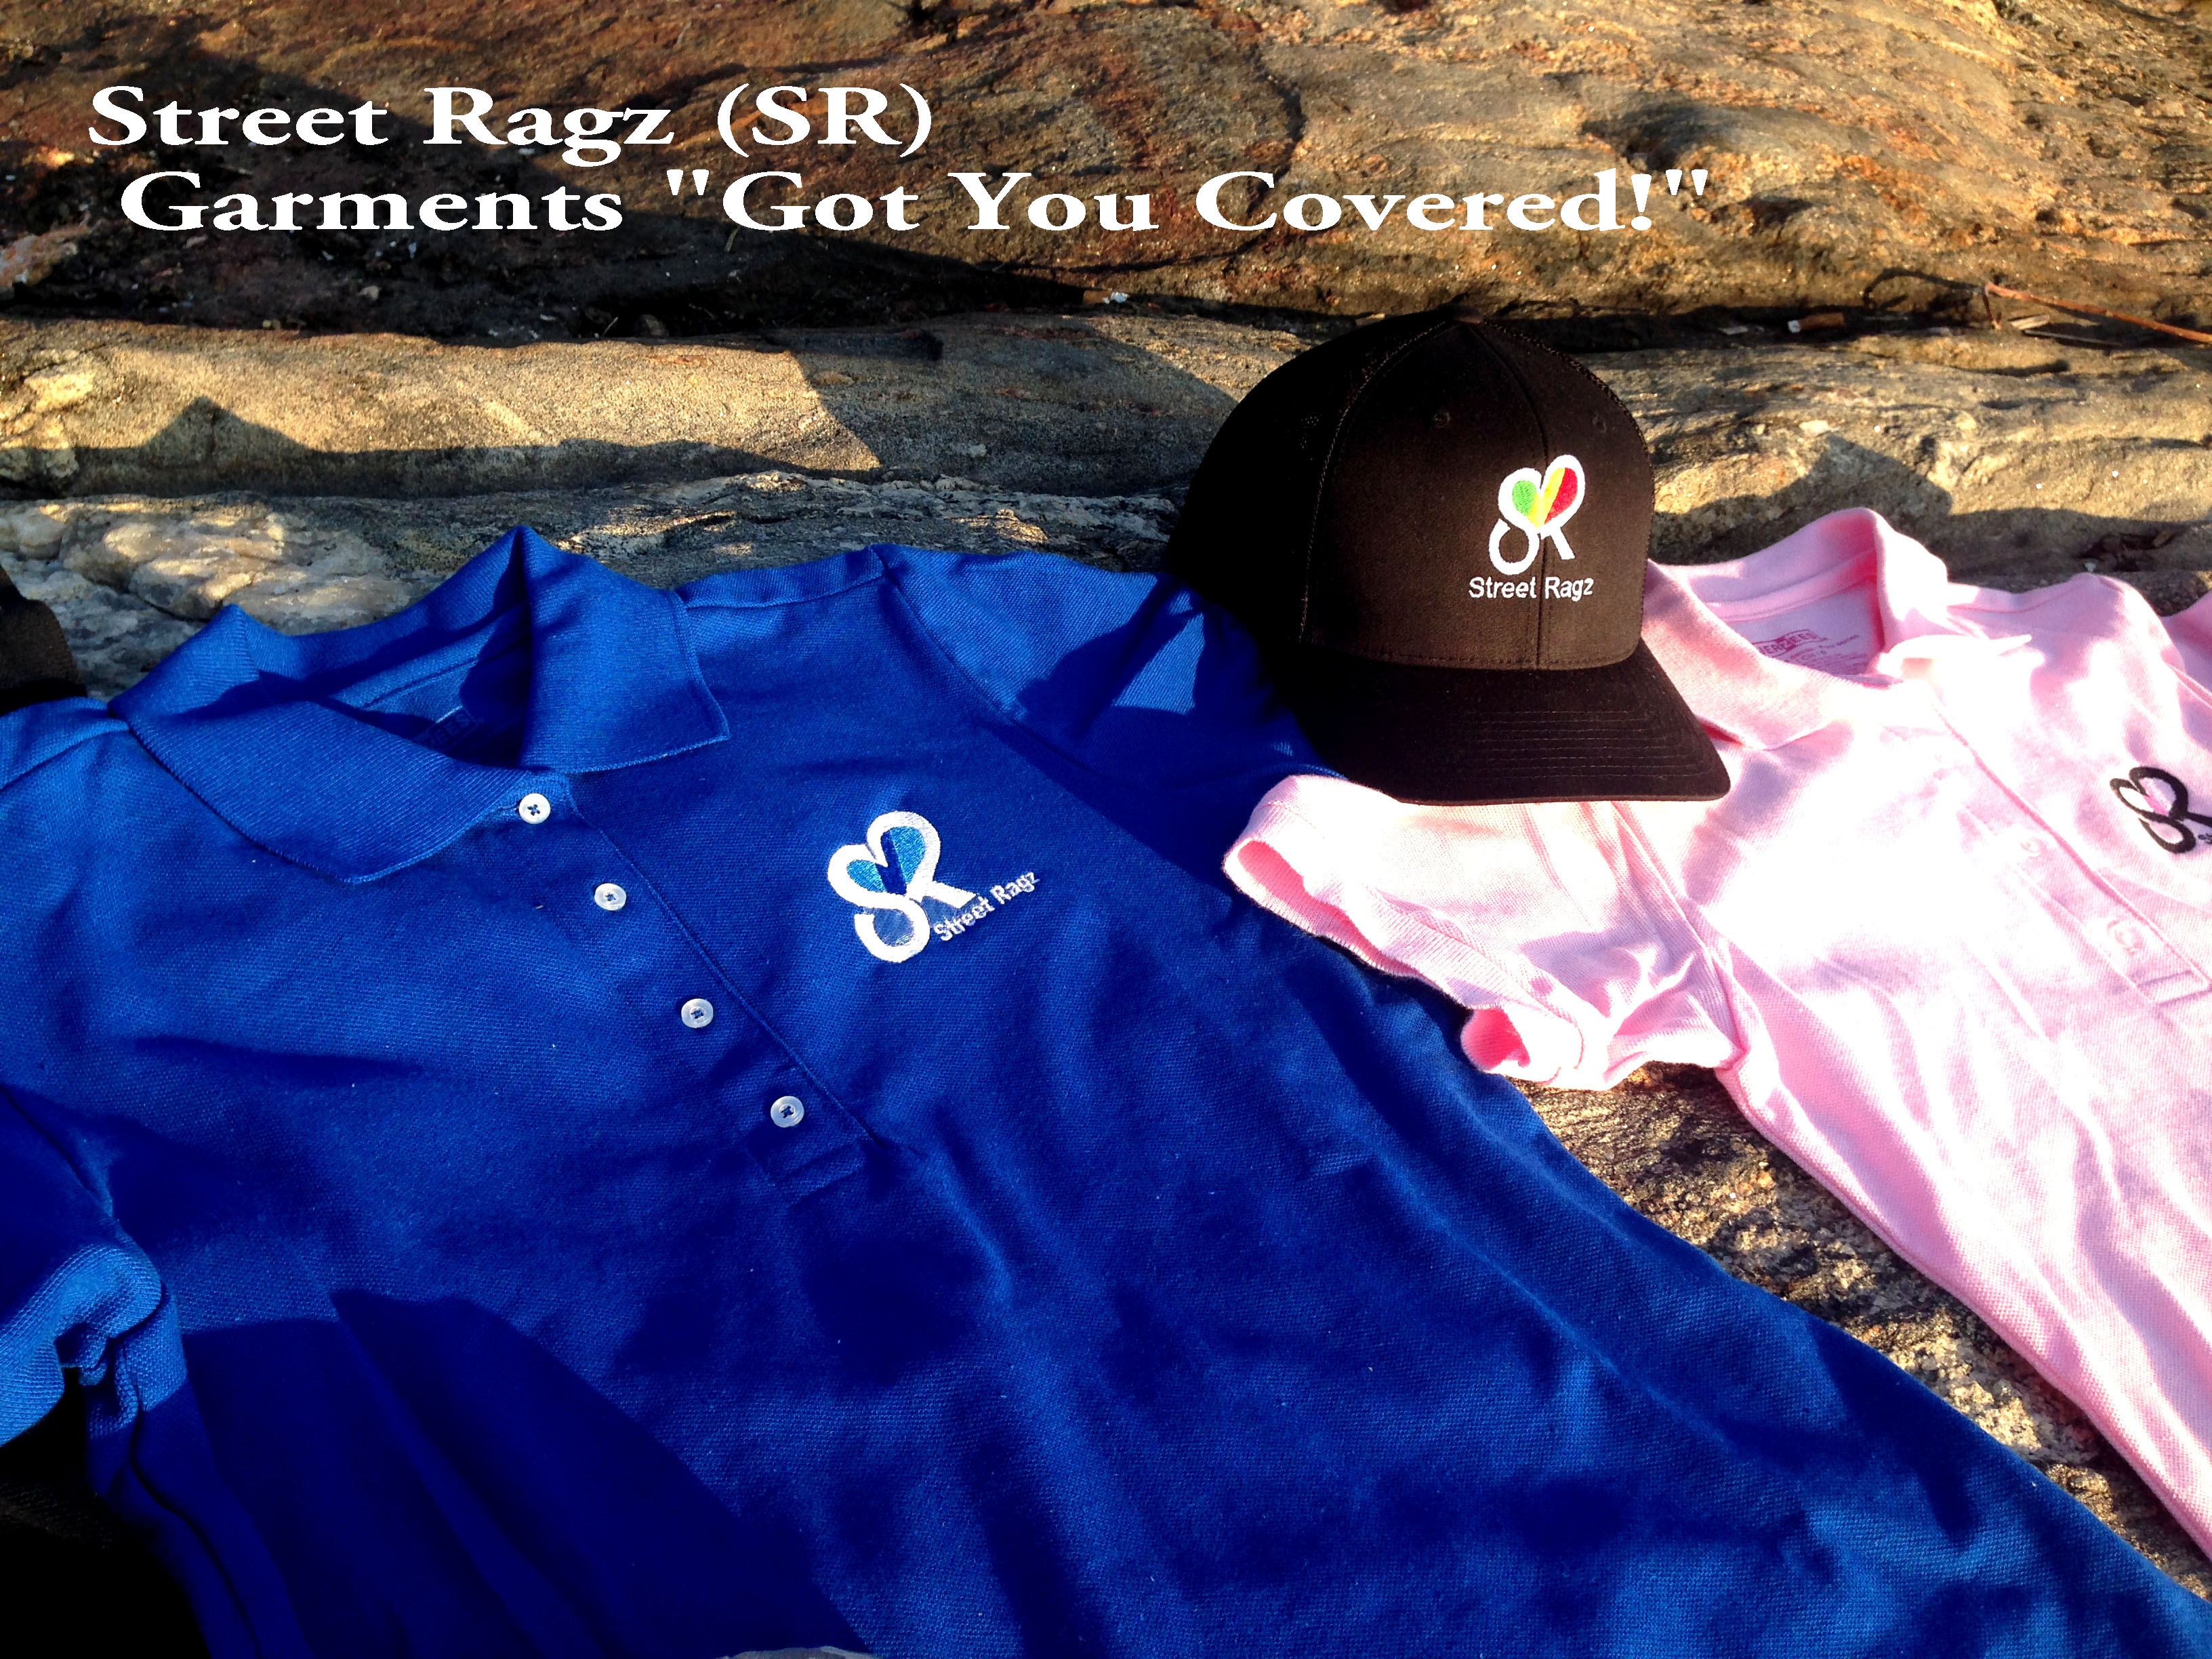 Street Ragz (SR) clothing.